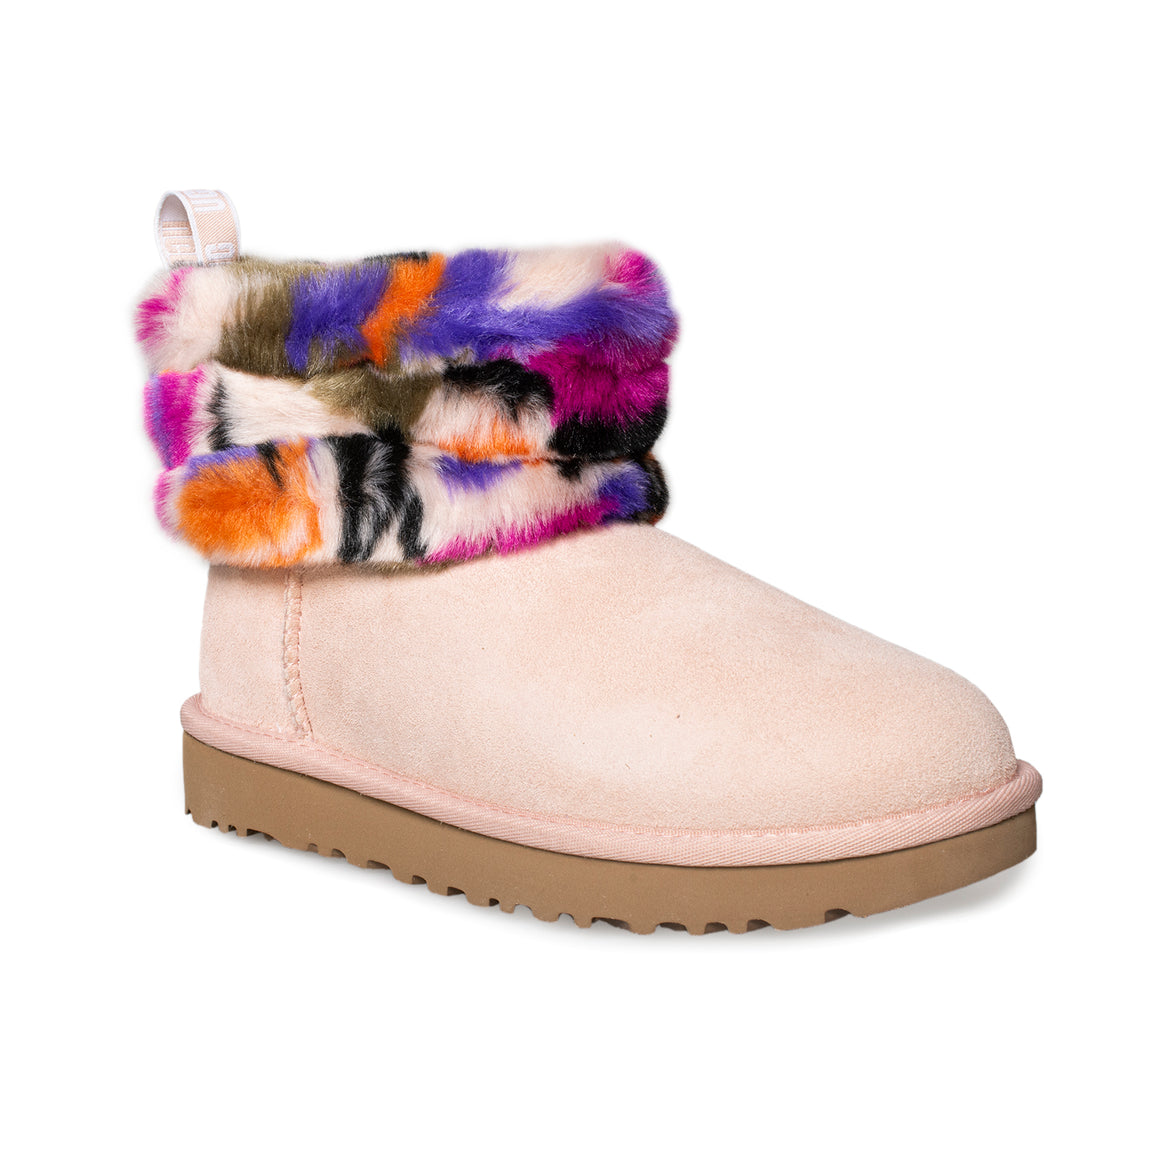 UGG Fluff Mini Quilted Motlee Multi Colored Boot's - Women's